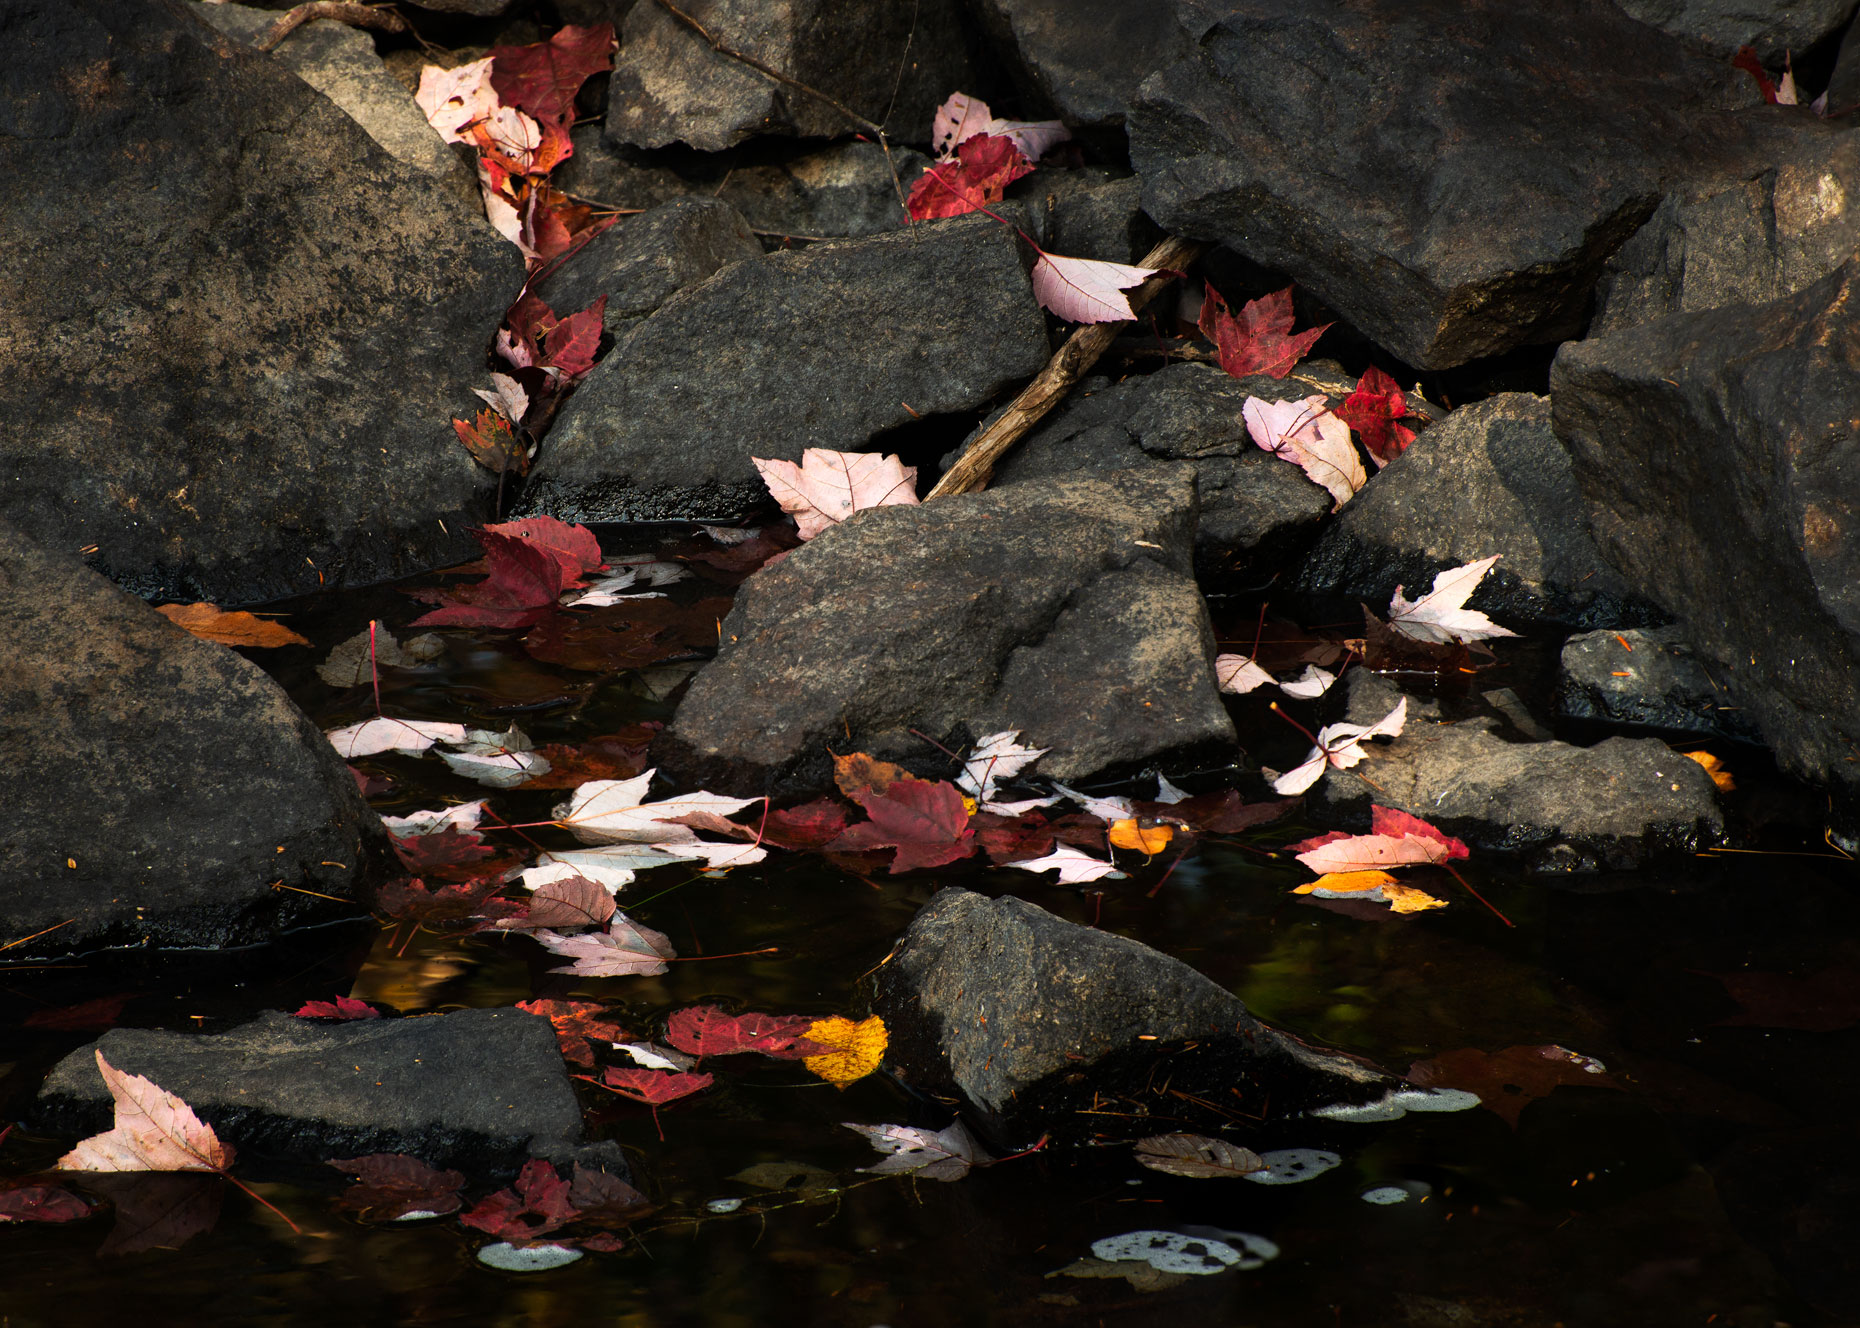 Fallen Leaves on Rocks